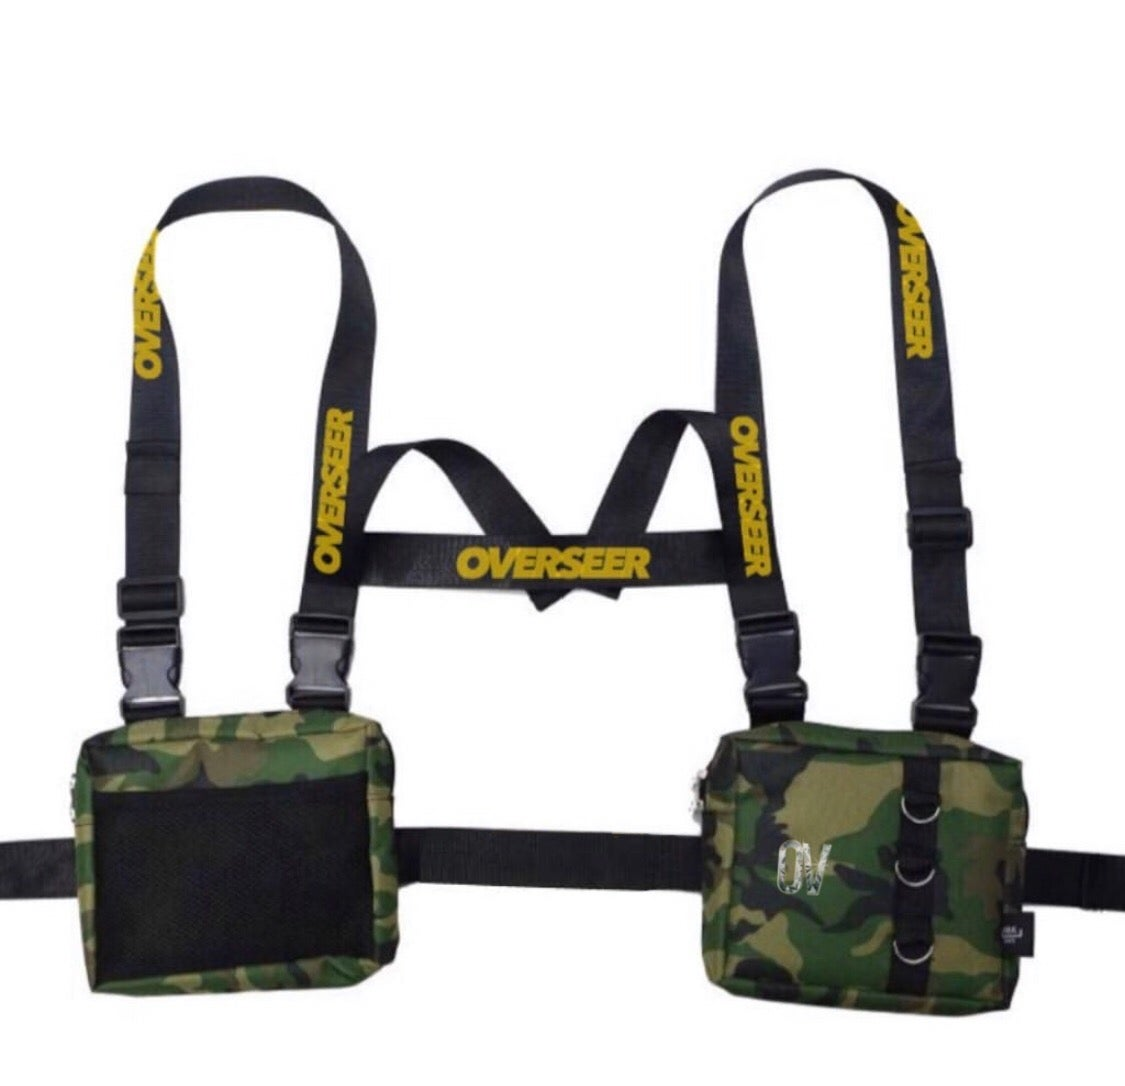 Image of CAMO OVERSEER HARNESS